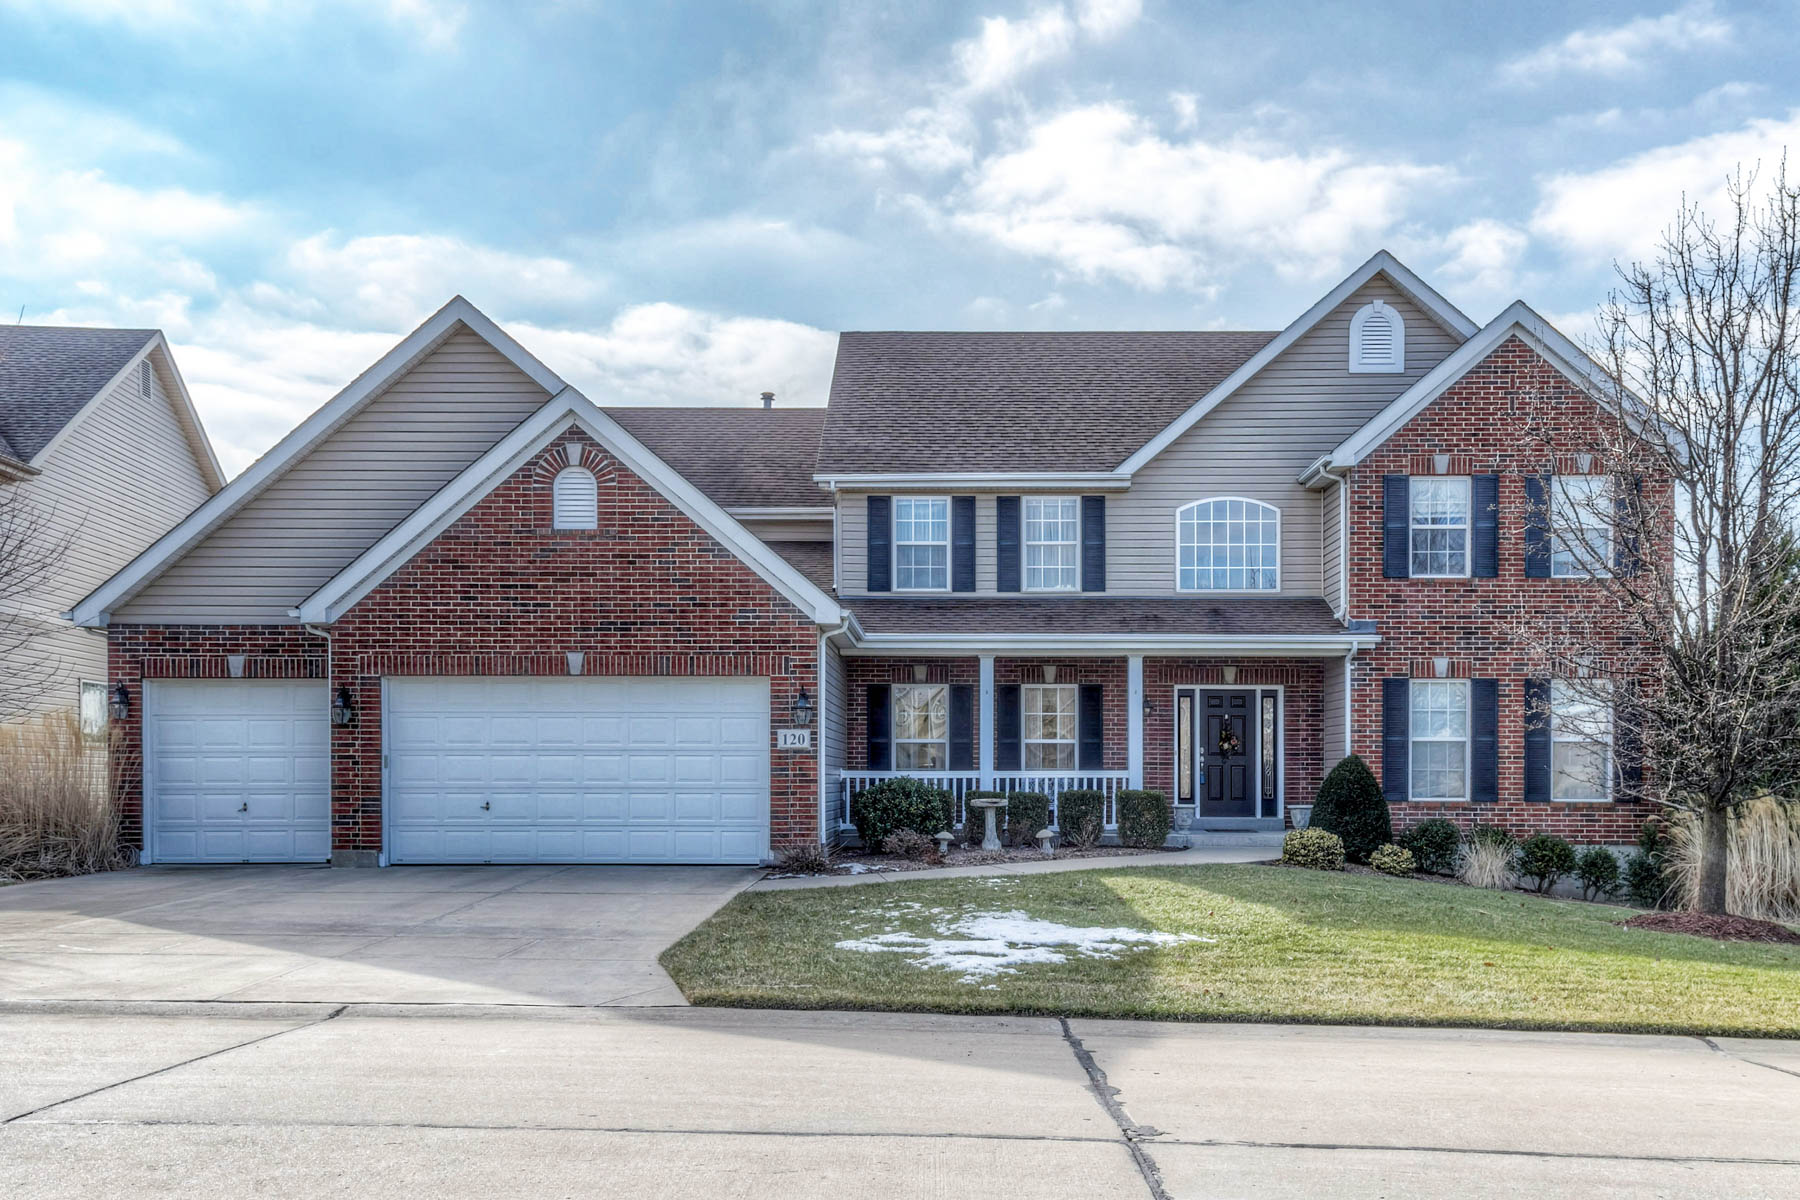 Single Family Home for Sale at Beautiful 2 story 120 Cripple Creek St. Louis, Missouri, 63129 United States